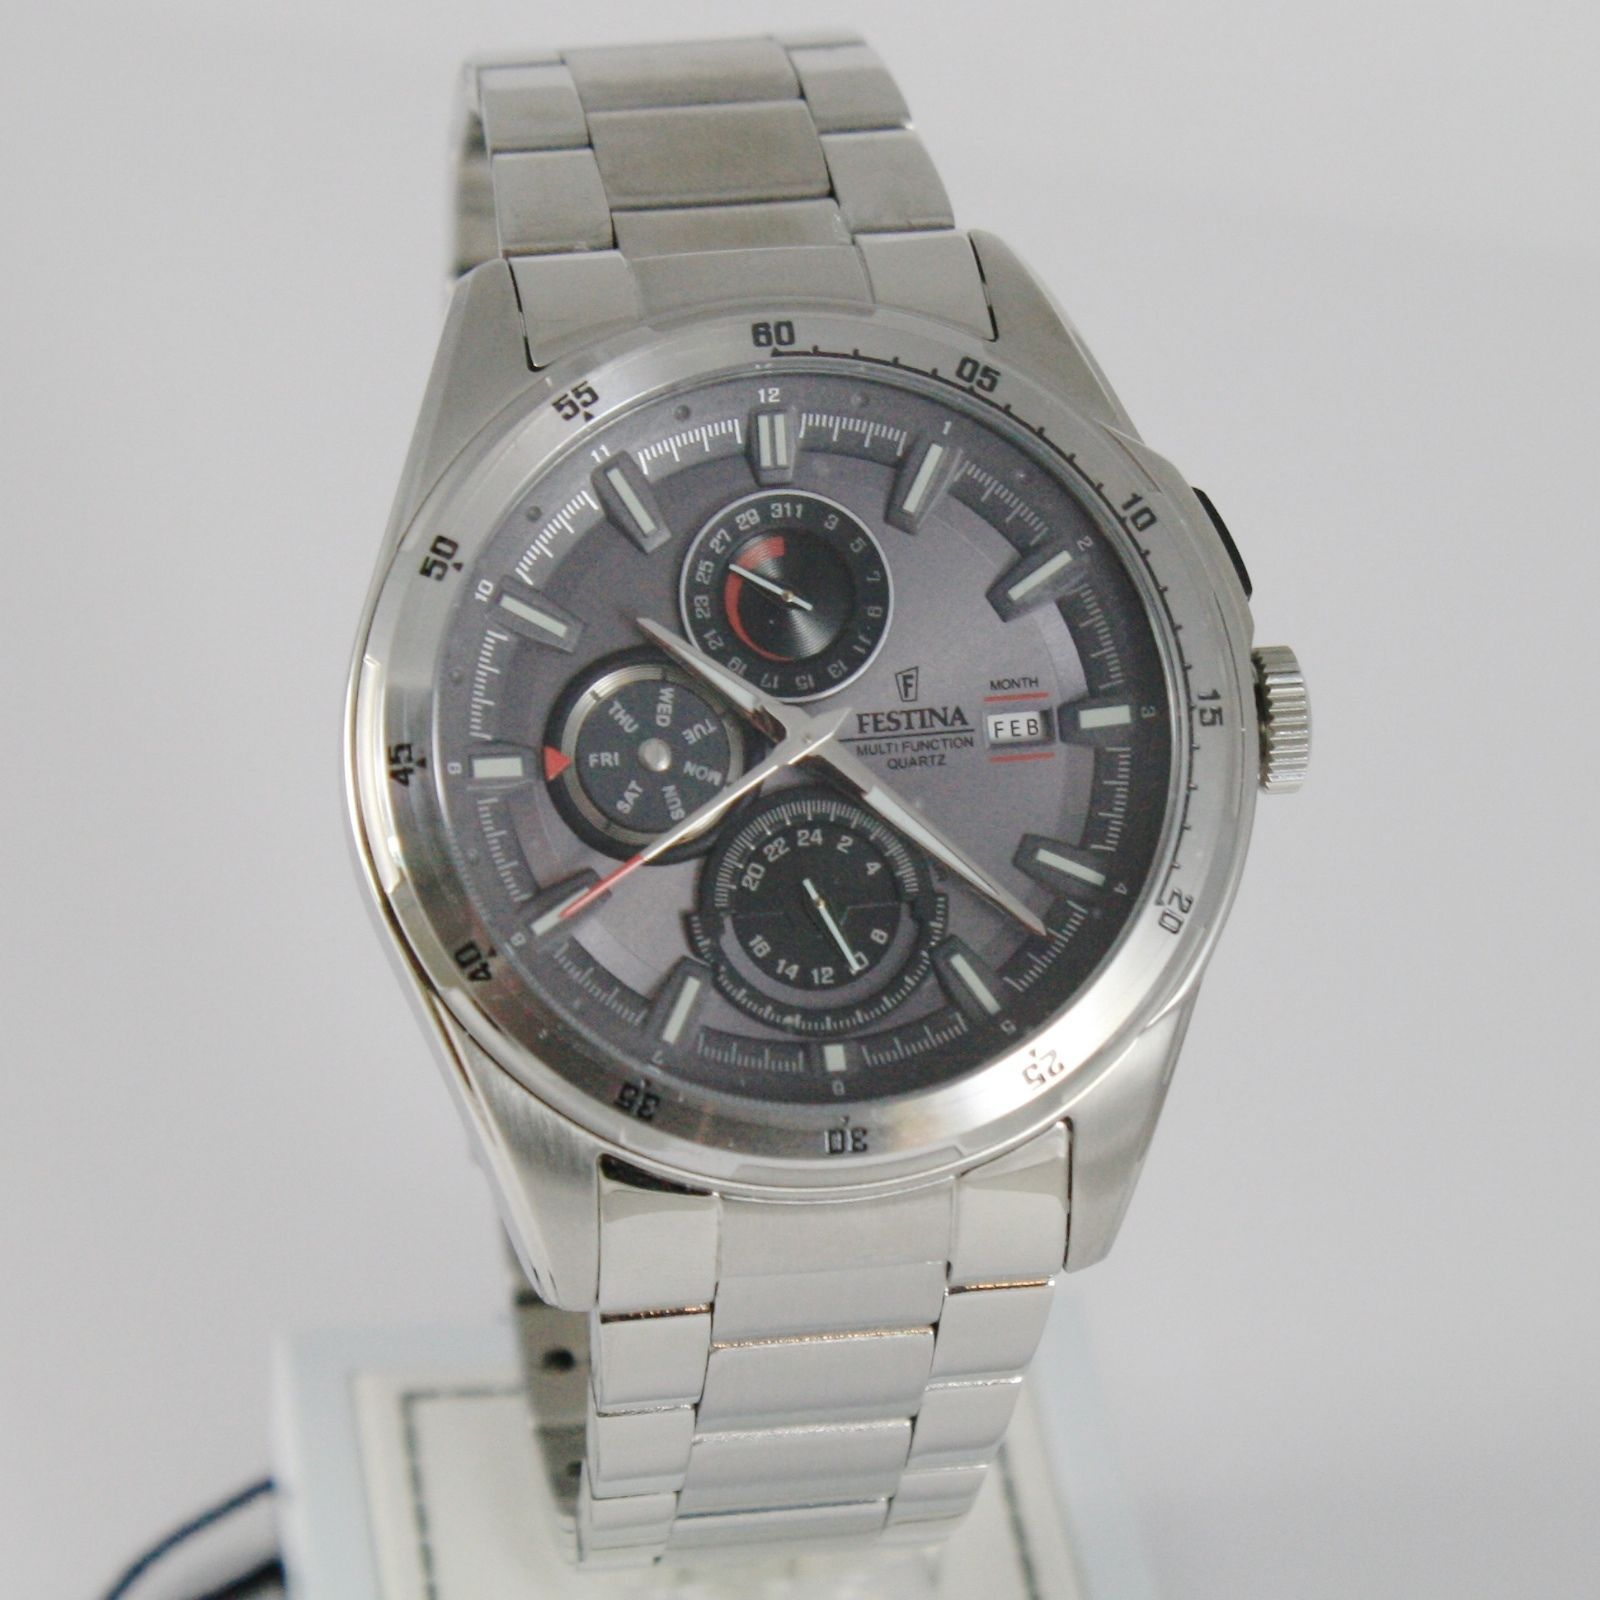 FESTINA WATCH, QUARTZ, 43 MM CASE, 5 ATM, DATE DAY MONTH 24 HOURS MULTIFUNCTION